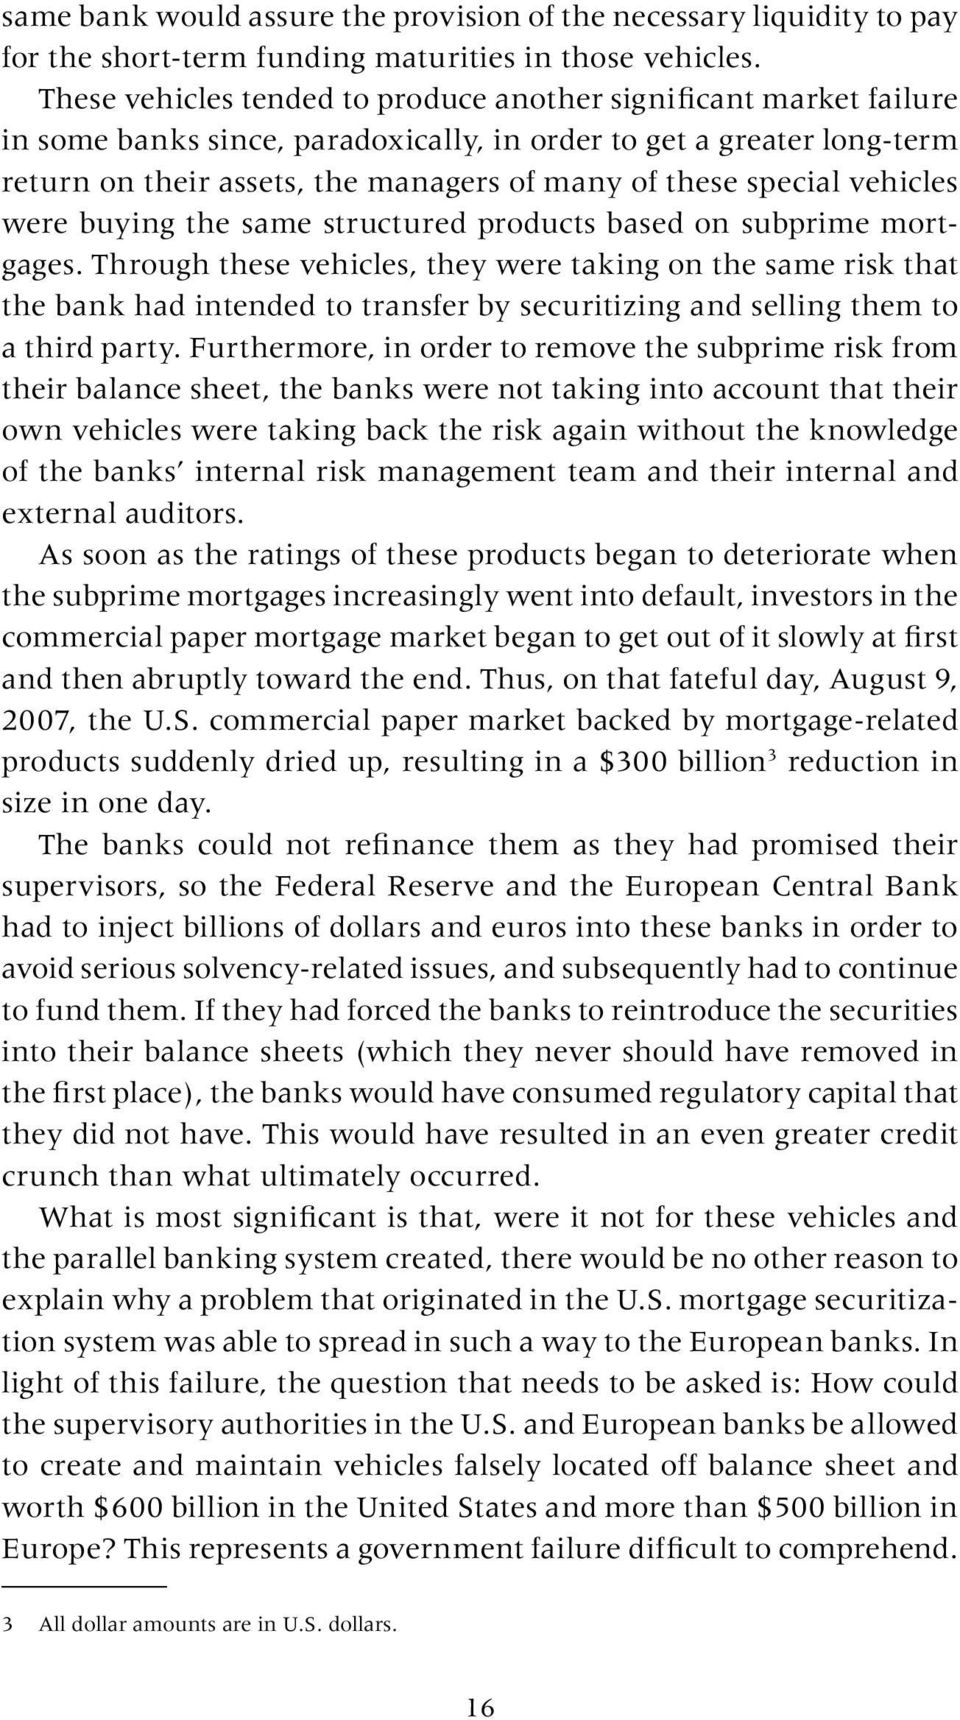 special vehicles were buying the same structured products based on subprime mortgages.